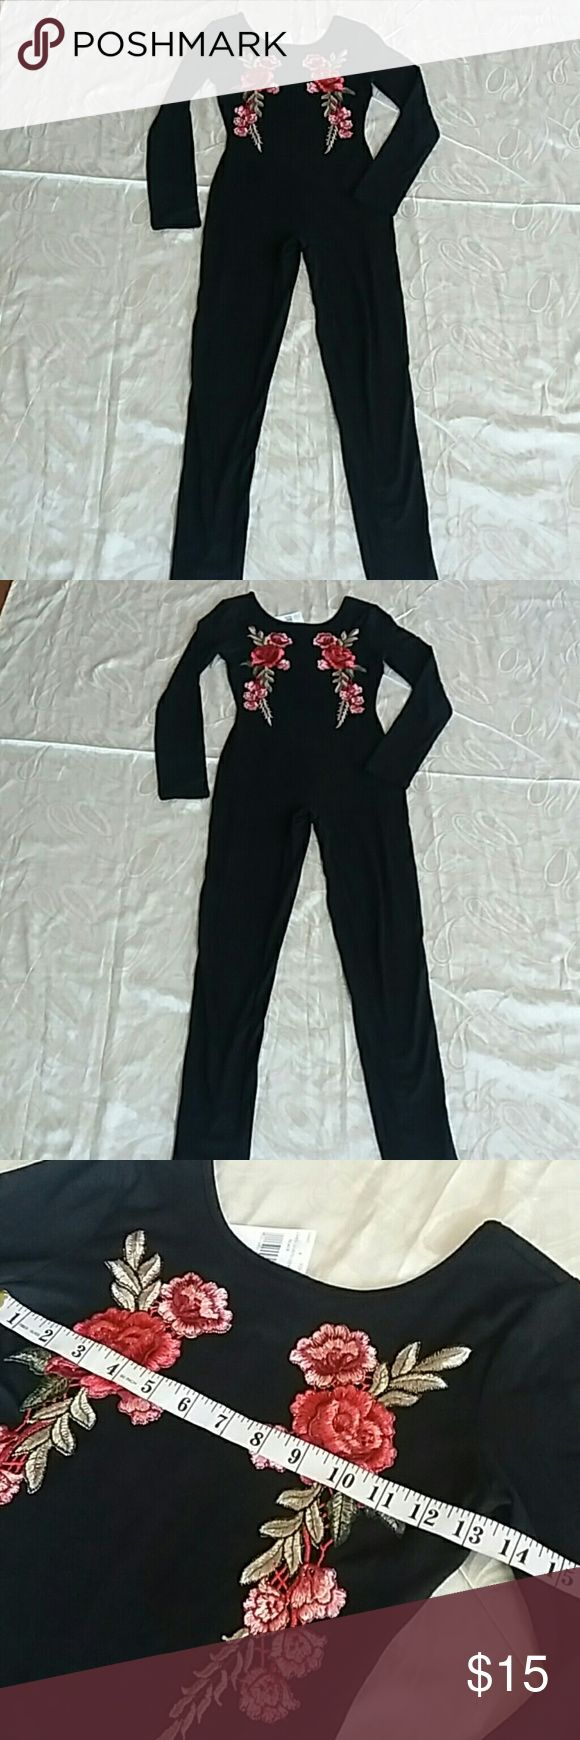 NWT black catsuit Size small stretch black catsuit with floral design on chest and scoop front and back. New with tags. love J Pants Jumpsuits & Rompers